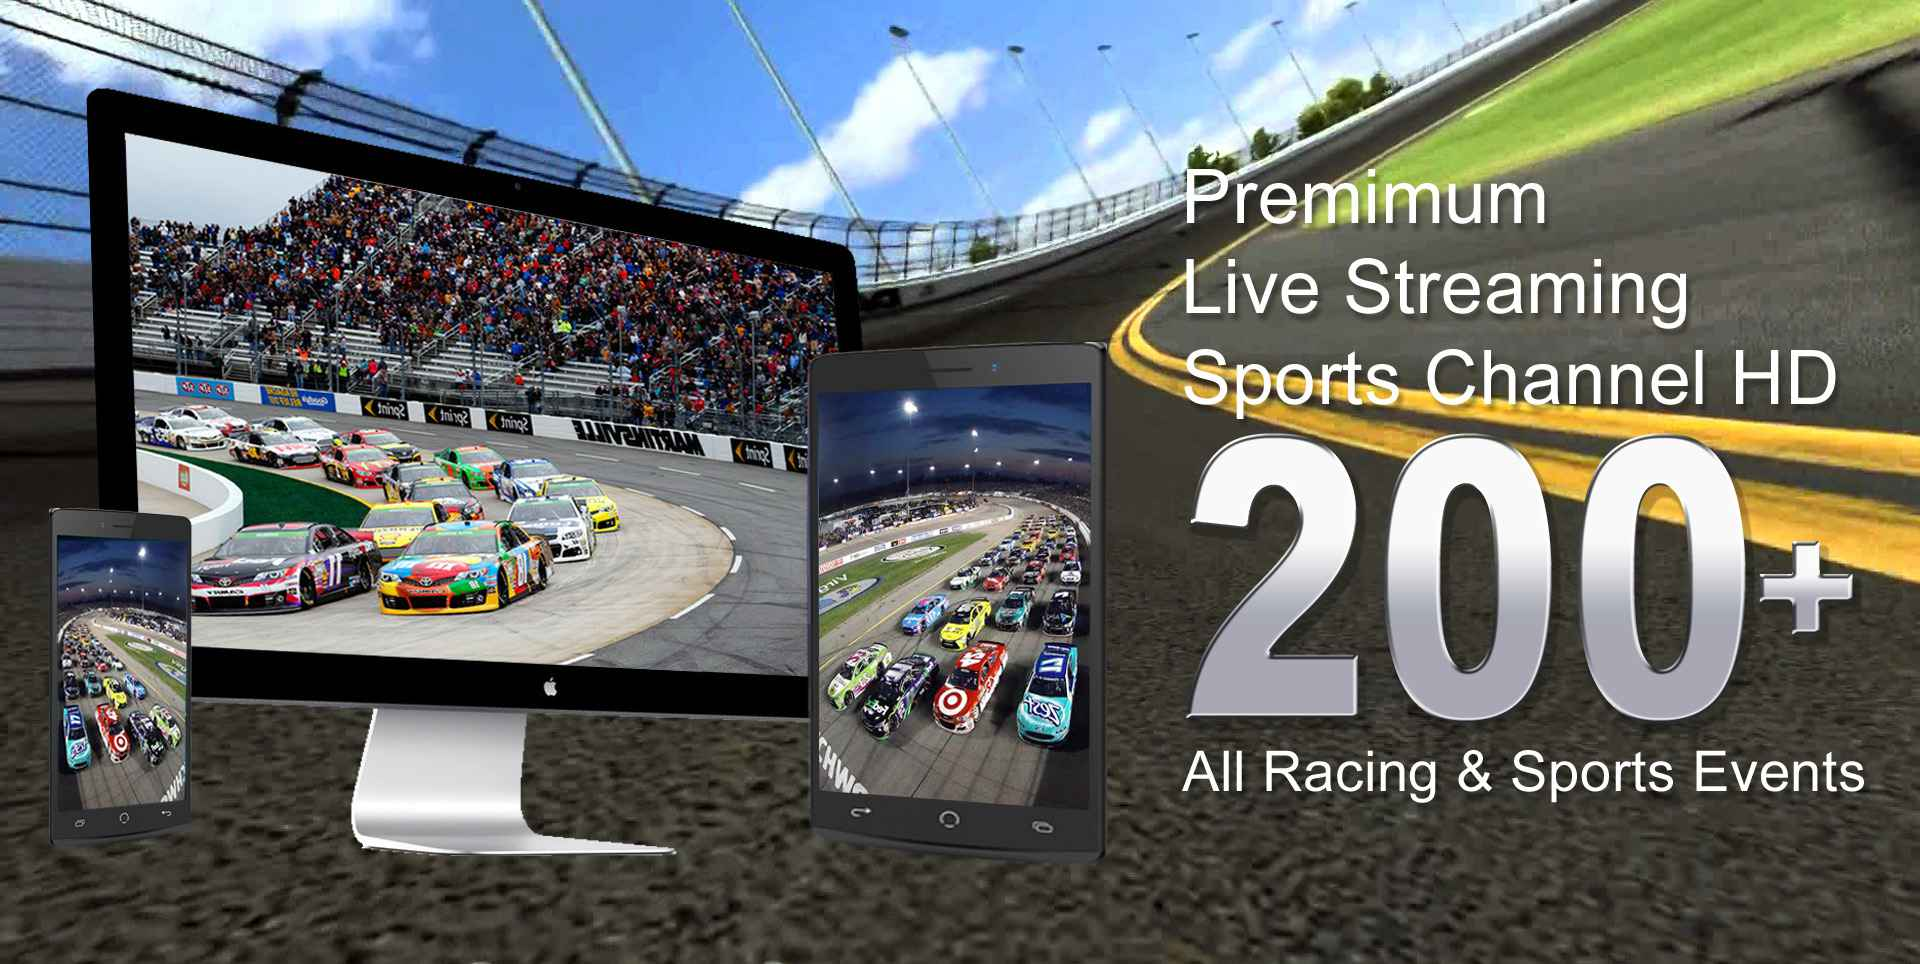 2018 Boyd Gaming 300 Xfinity Series Live